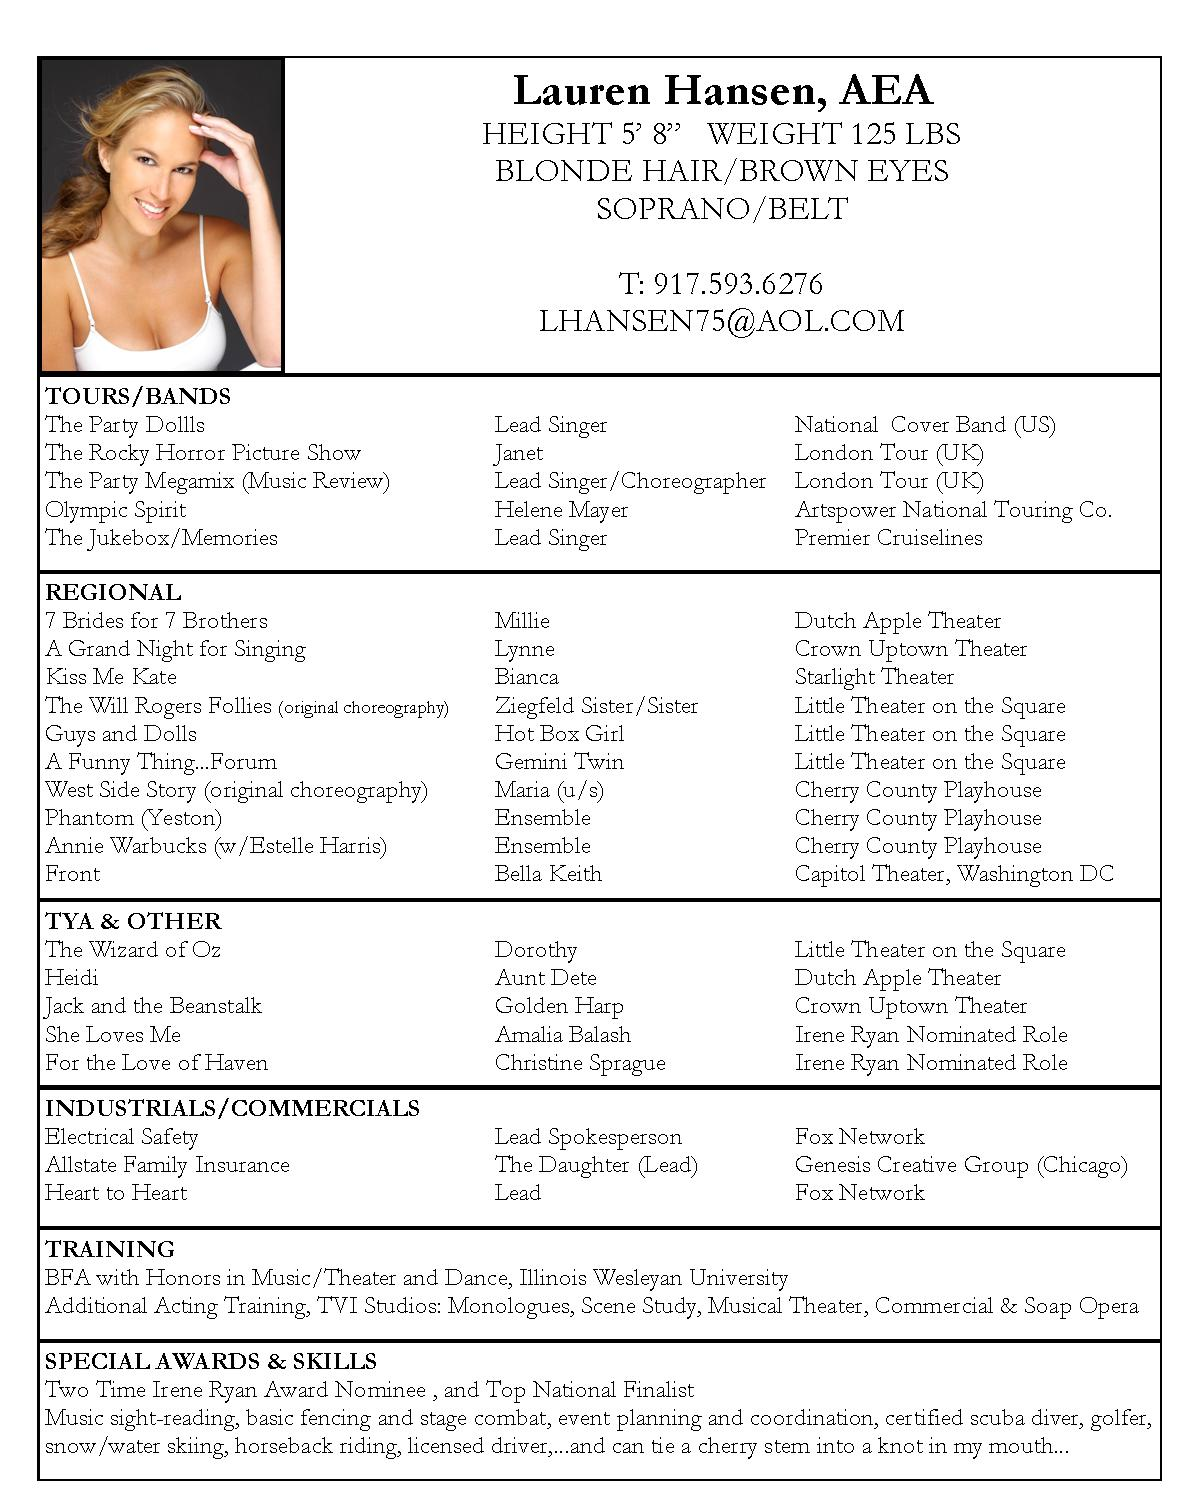 Opposenewapstandardsus  Prepossessing Resume For Actors Resume For Acting Actors Acting Resume Template  With Exquisite Acting Cv  Beginner Acting Resume Example For Inexperienced  With Awesome Sample Resume With References Also College Admissions Resume Template In Addition How To Write A Resume For College Application And Styles Of Resumes As Well As Veterans Resume Builder Additionally Hard Copy Resume From Kelseymarieco With Opposenewapstandardsus  Exquisite Resume For Actors Resume For Acting Actors Acting Resume Template  With Awesome Acting Cv  Beginner Acting Resume Example For Inexperienced  And Prepossessing Sample Resume With References Also College Admissions Resume Template In Addition How To Write A Resume For College Application From Kelseymarieco